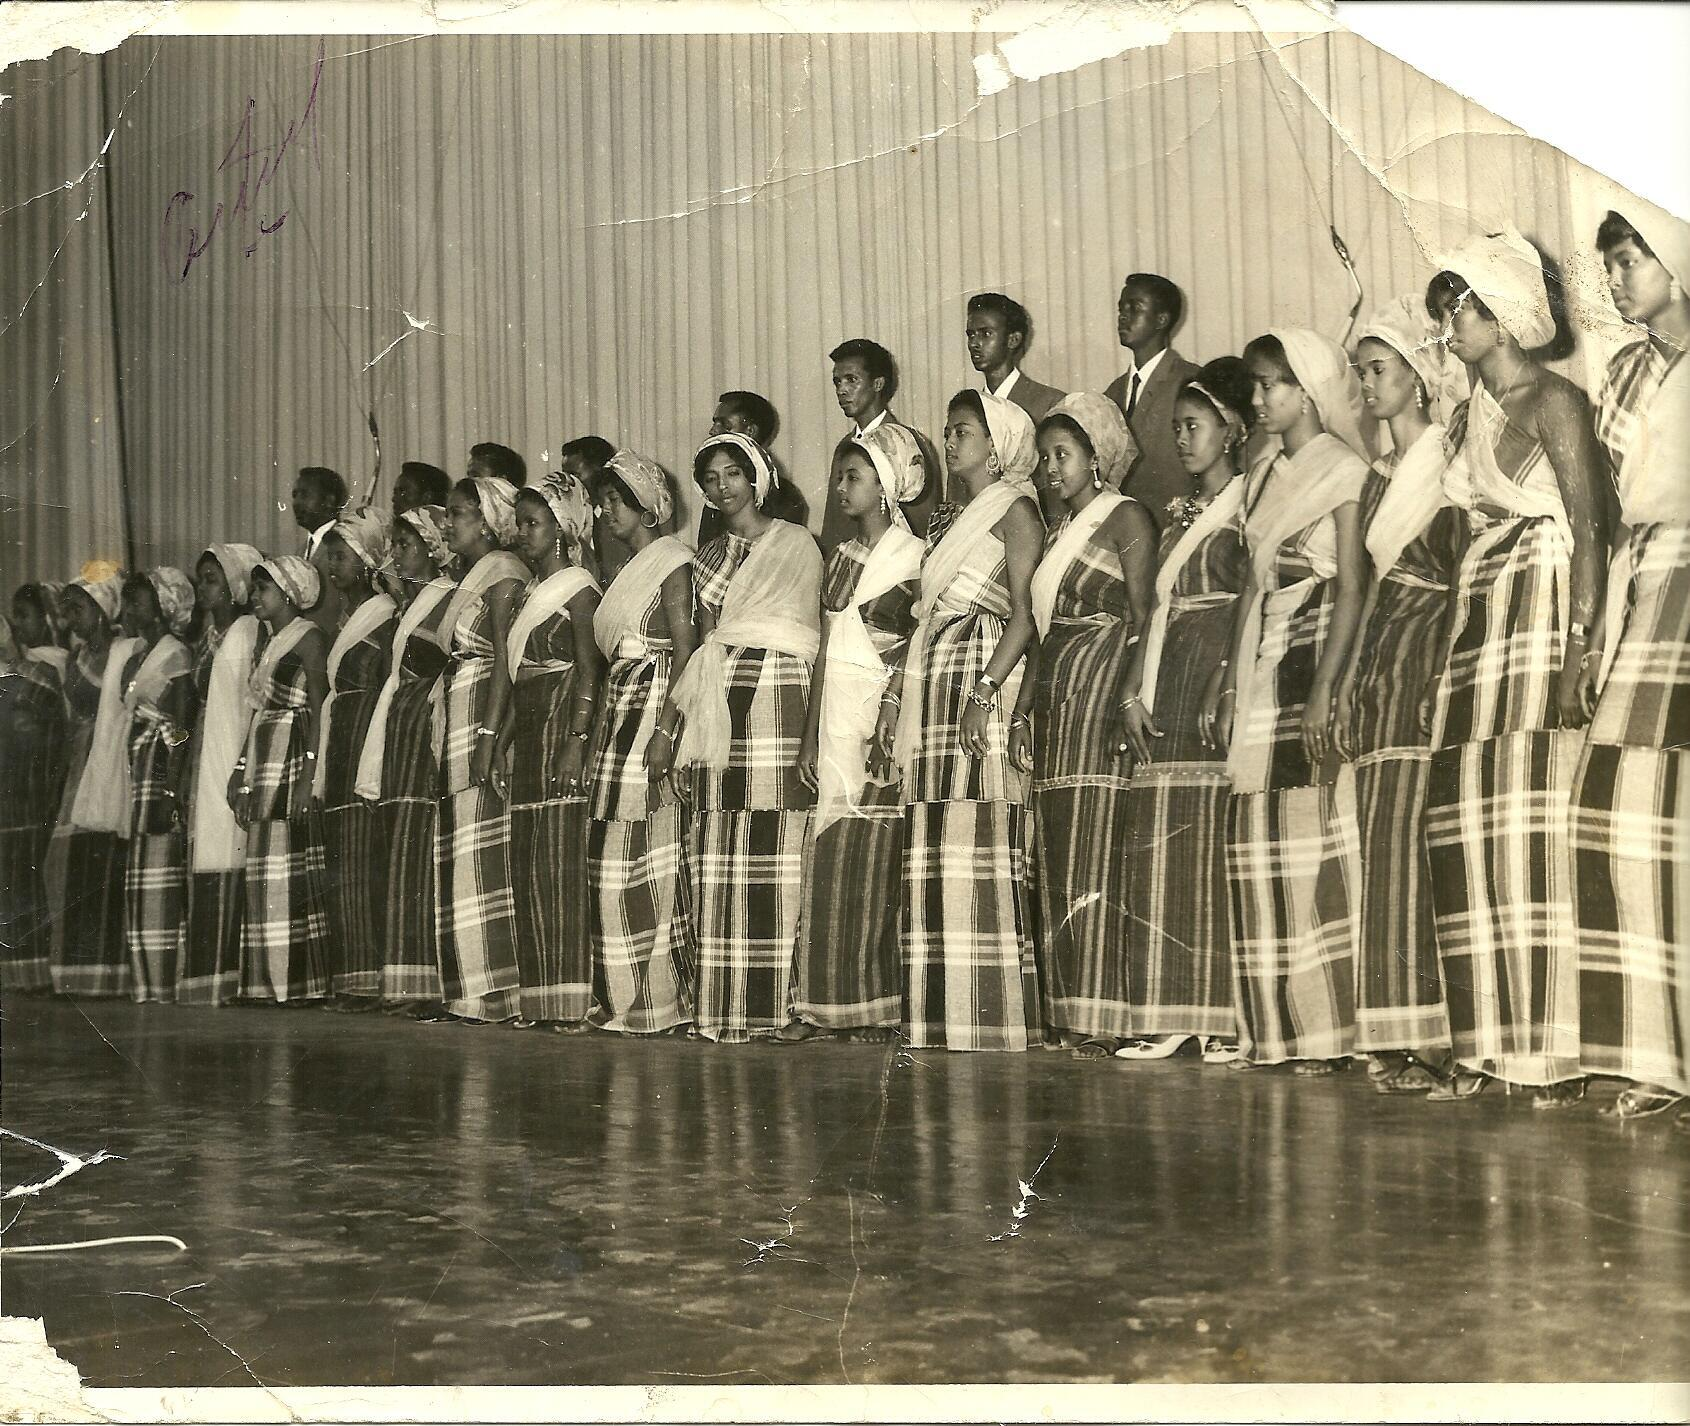 Waaberi troupe perform in Mogadishu in the 1970s